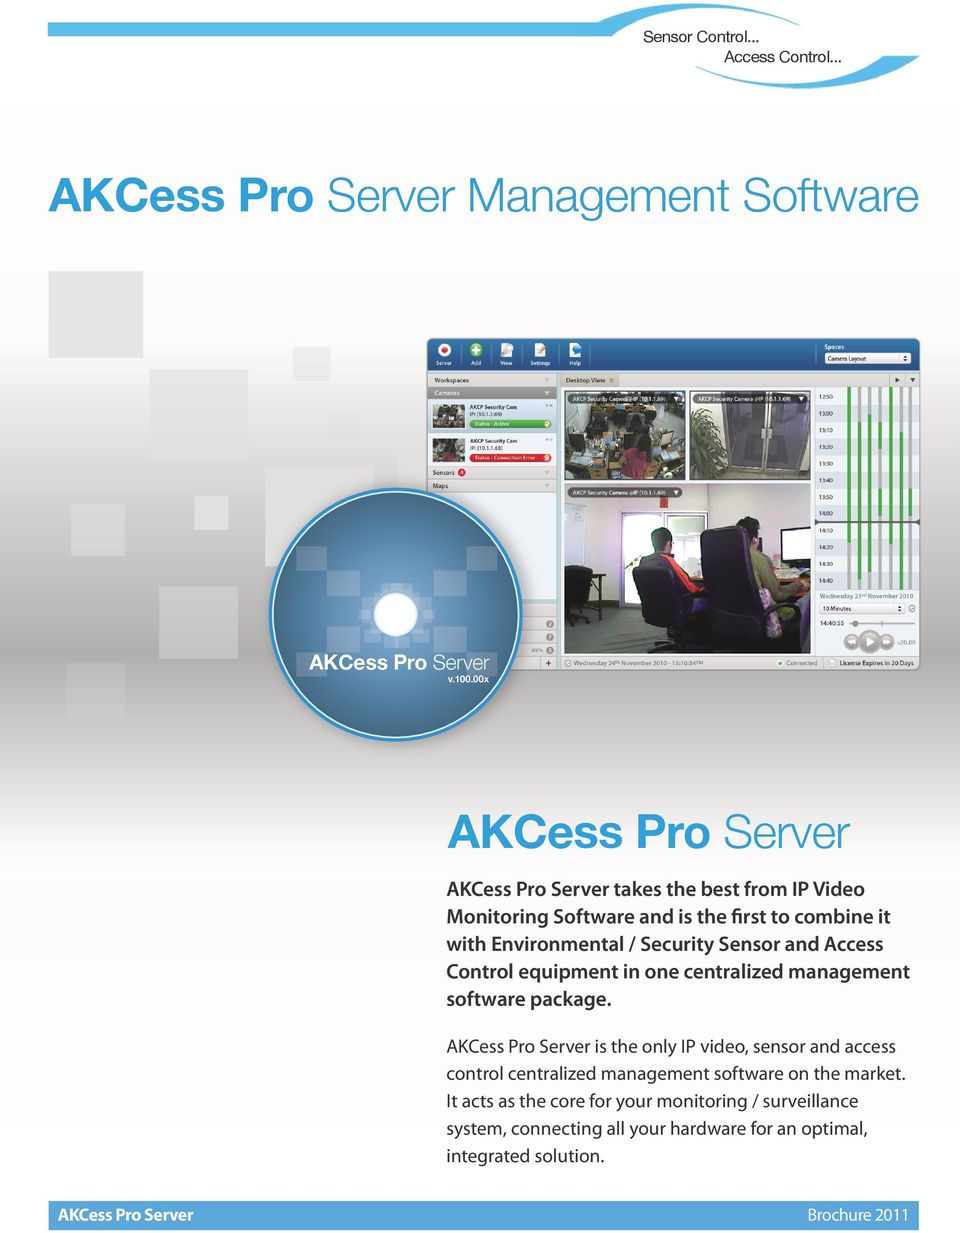 Sensor and Access Control equipment in one centralized management software package.